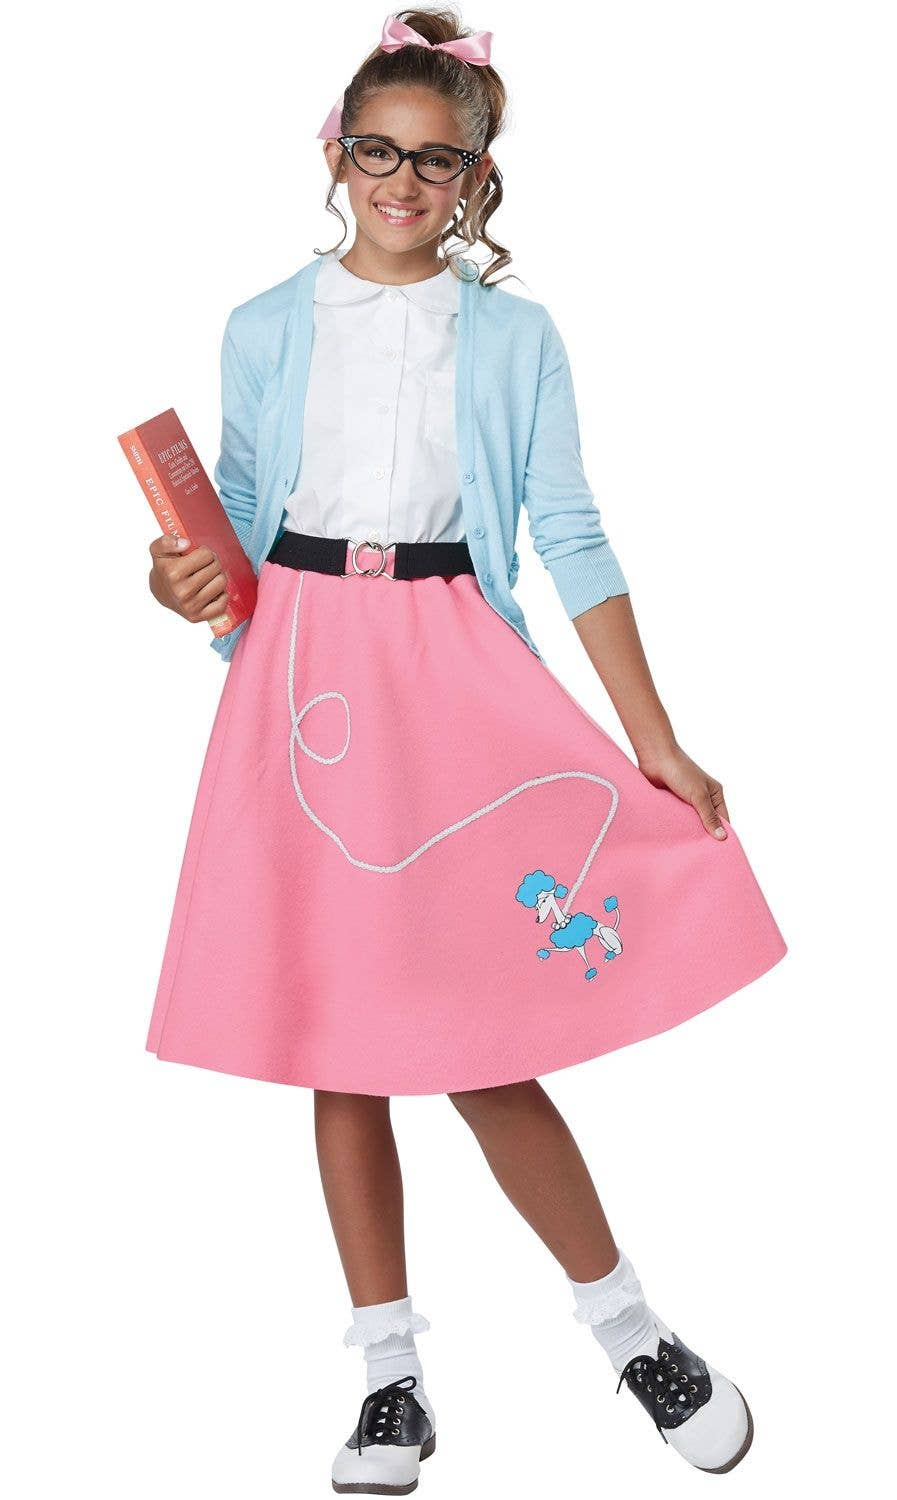 0c6a62134e1fb 1950's Poodle Skirt Girls Costume | Retro 50's Girls Outfit Costume